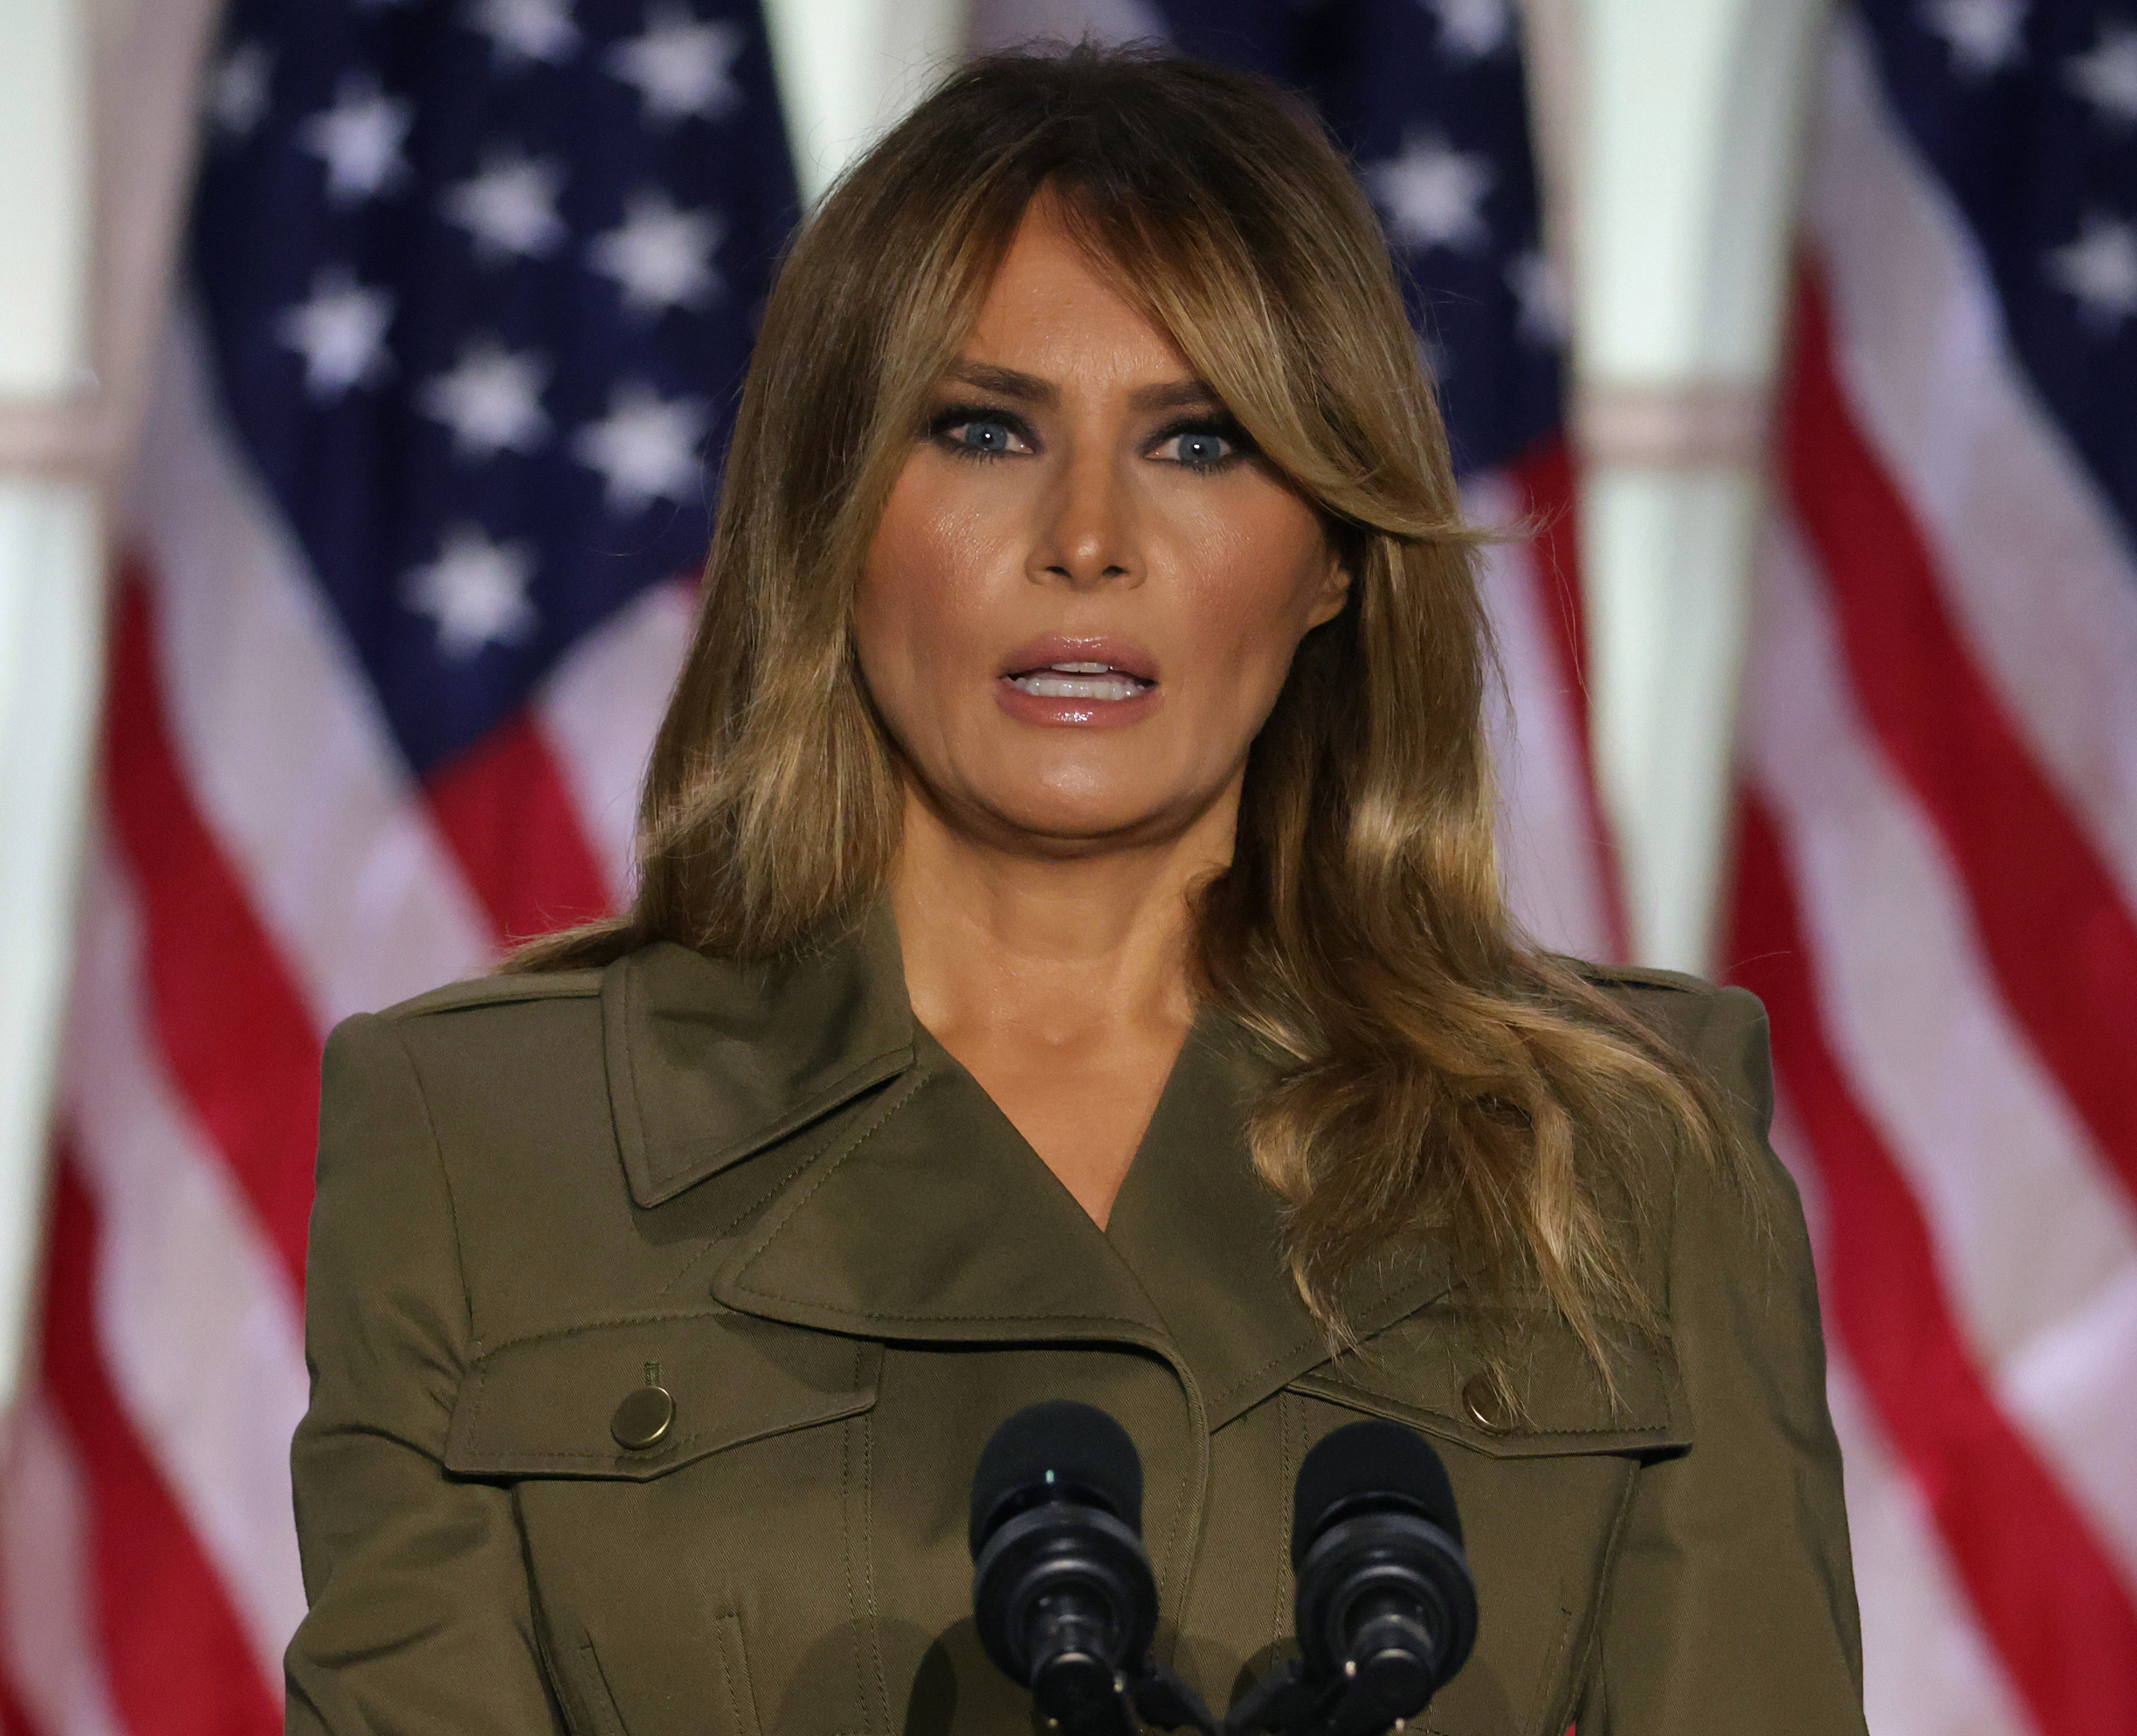 First Lady Melania Trump revealed on Wednesday that she's now tested negative for coronavirus